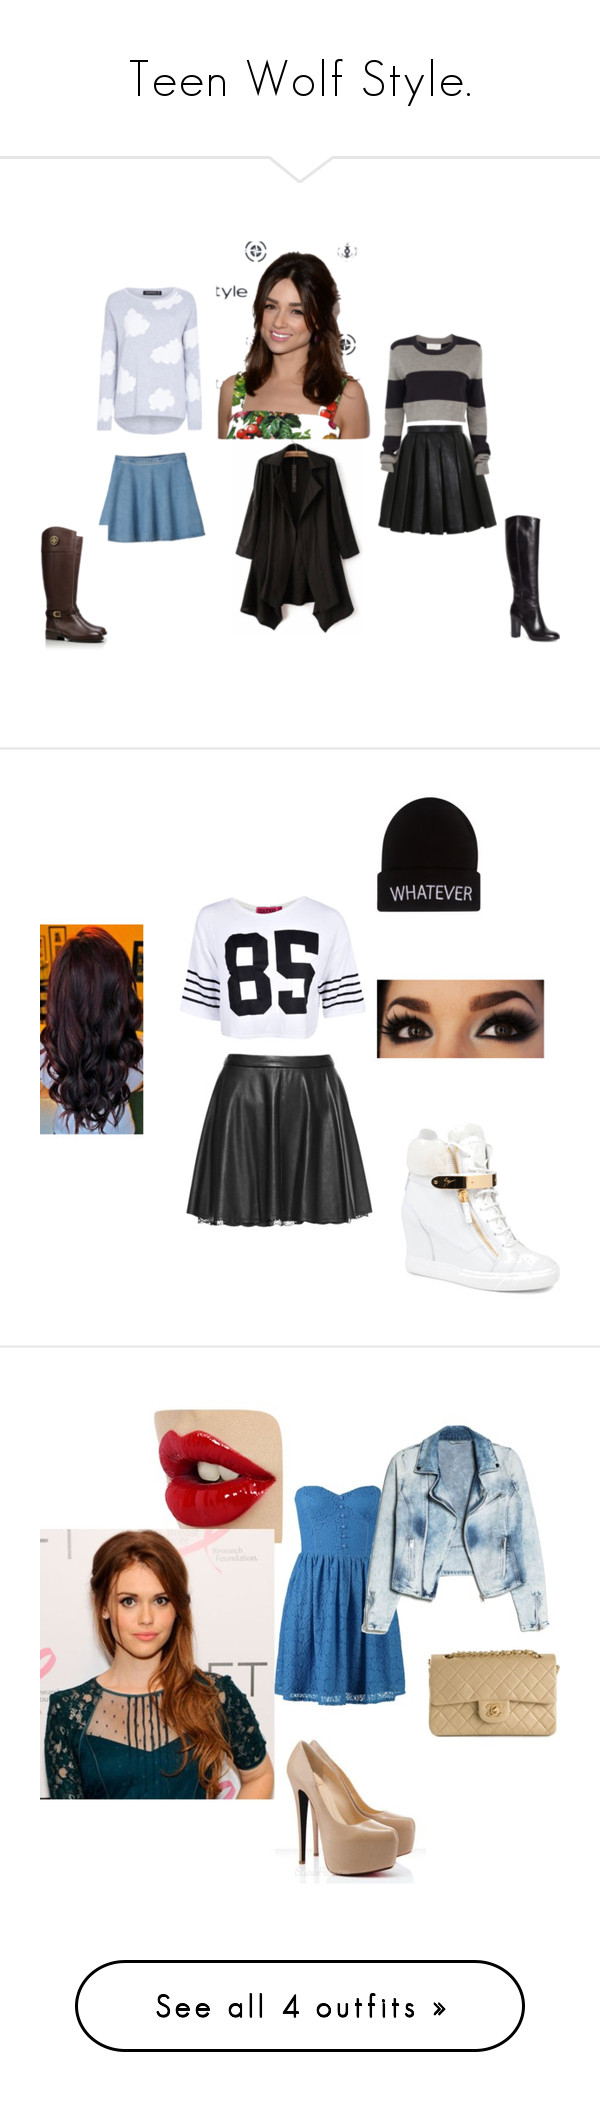 """""""Teen Wolf Style."""" by stydia-bed ❤ liked on Polyvore featuring Balmain, LULUS, A.L.C., Monki, Brooks Brothers, Tory Burch, allisonargent, Alice + Olivia, Boohoo and Giuseppe Zanotti"""